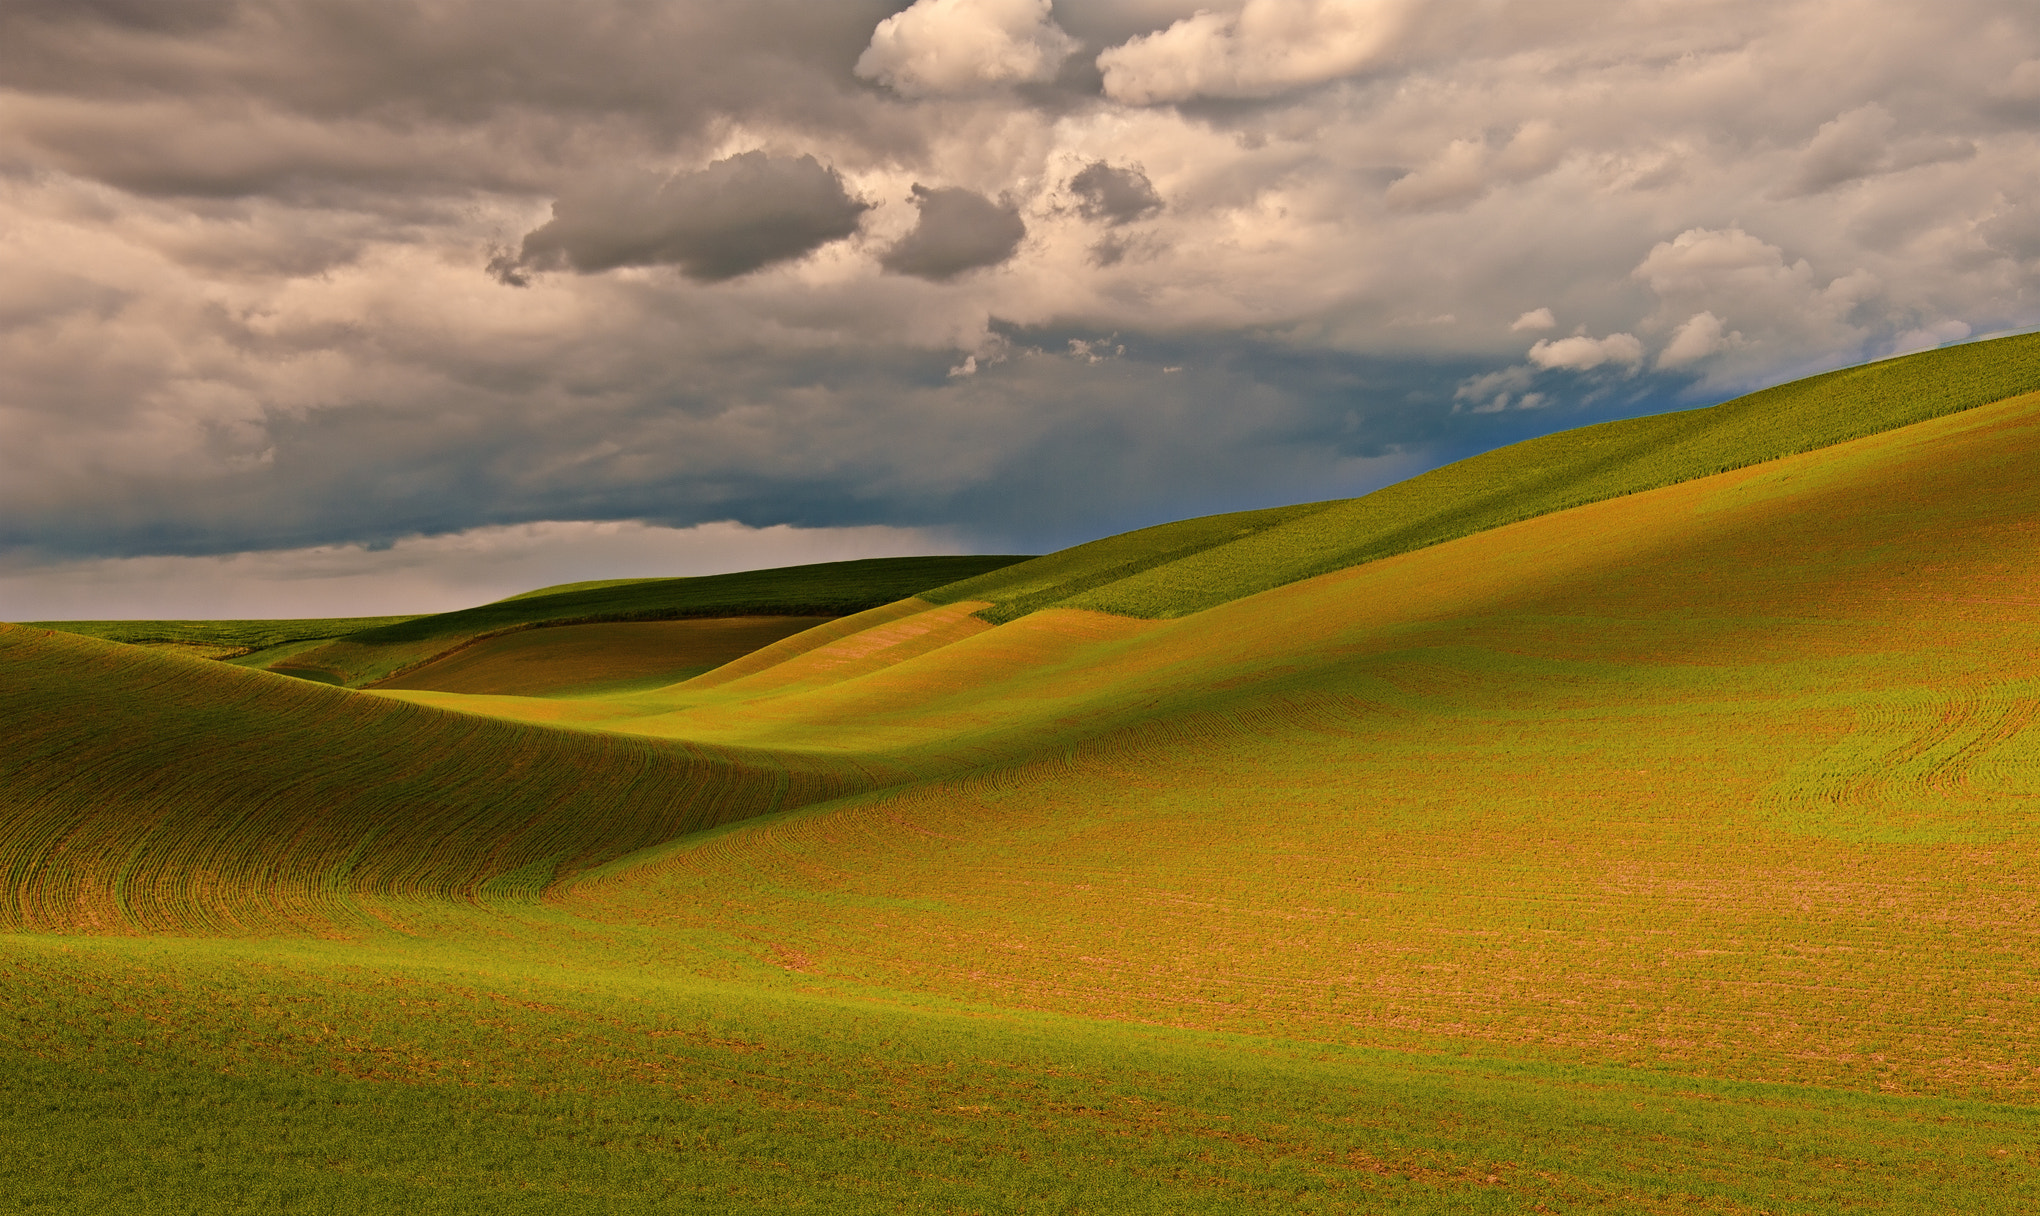 Photograph Glaciers, Clouds and Sun: Sculpture on the Palouse by Alvin Kroon on 500px